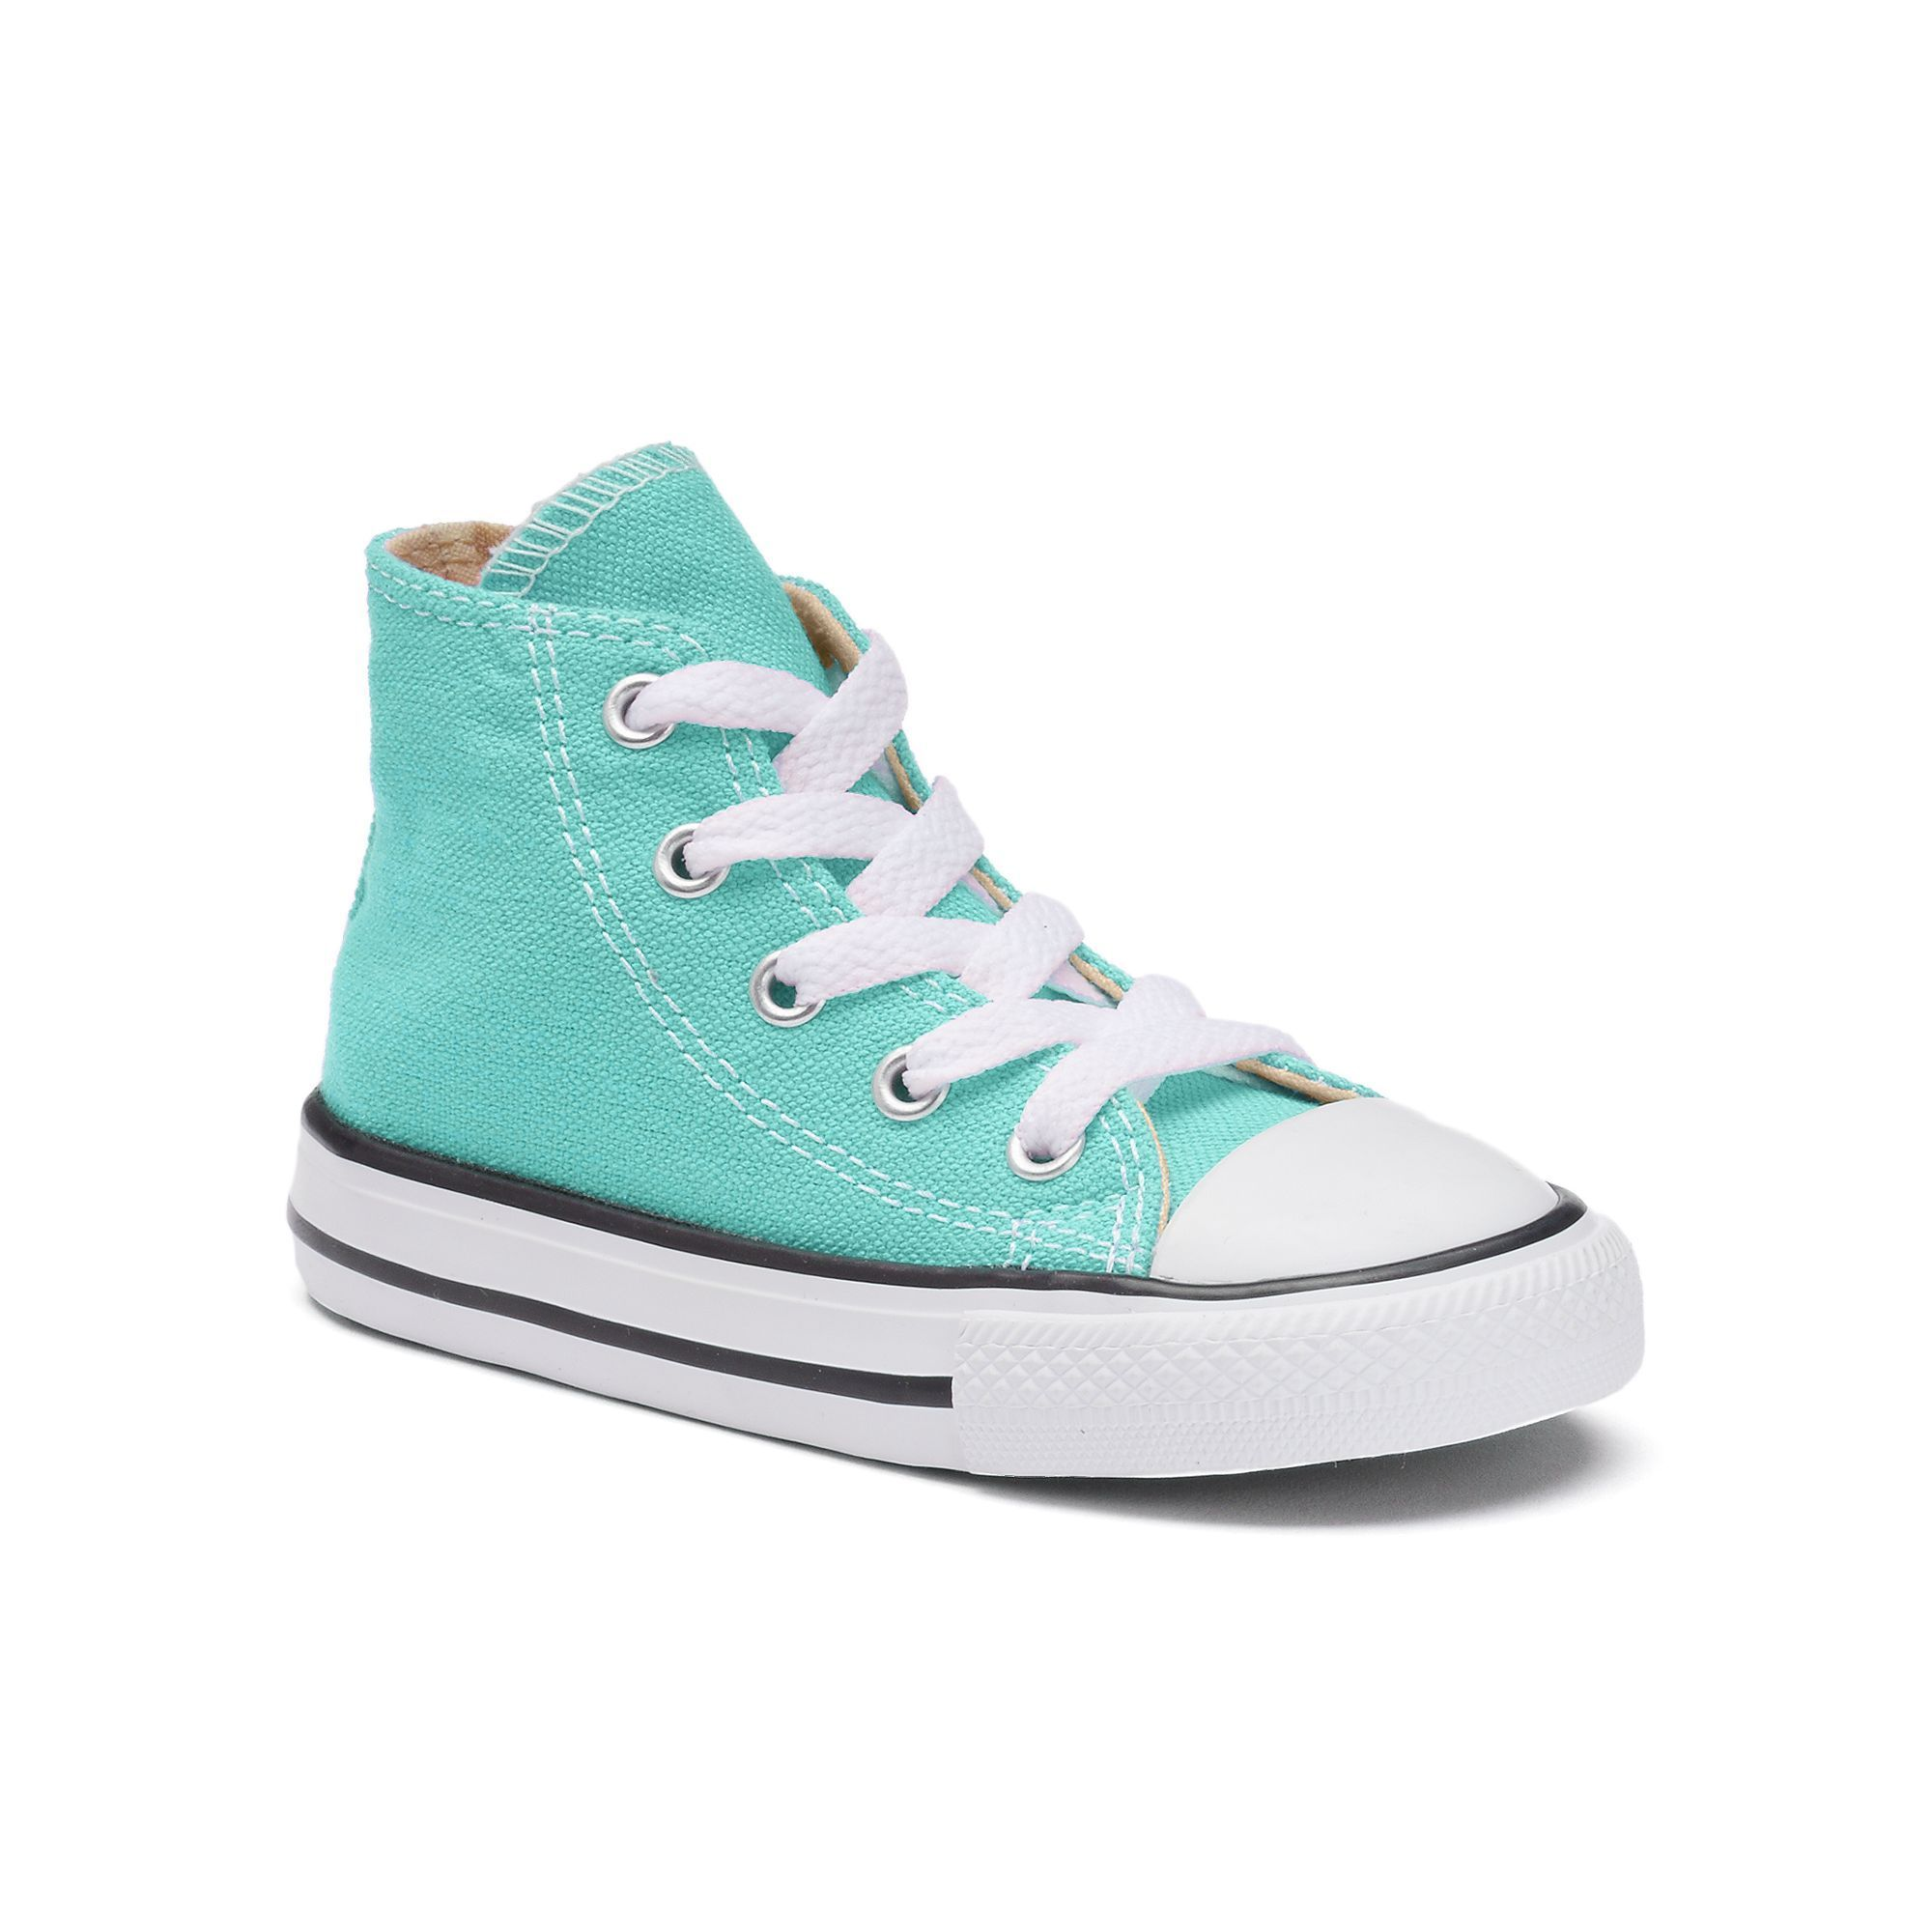 4f9c5d7e8ce98a Toddler Converse Chuck Taylor All Star High Top Sneakers